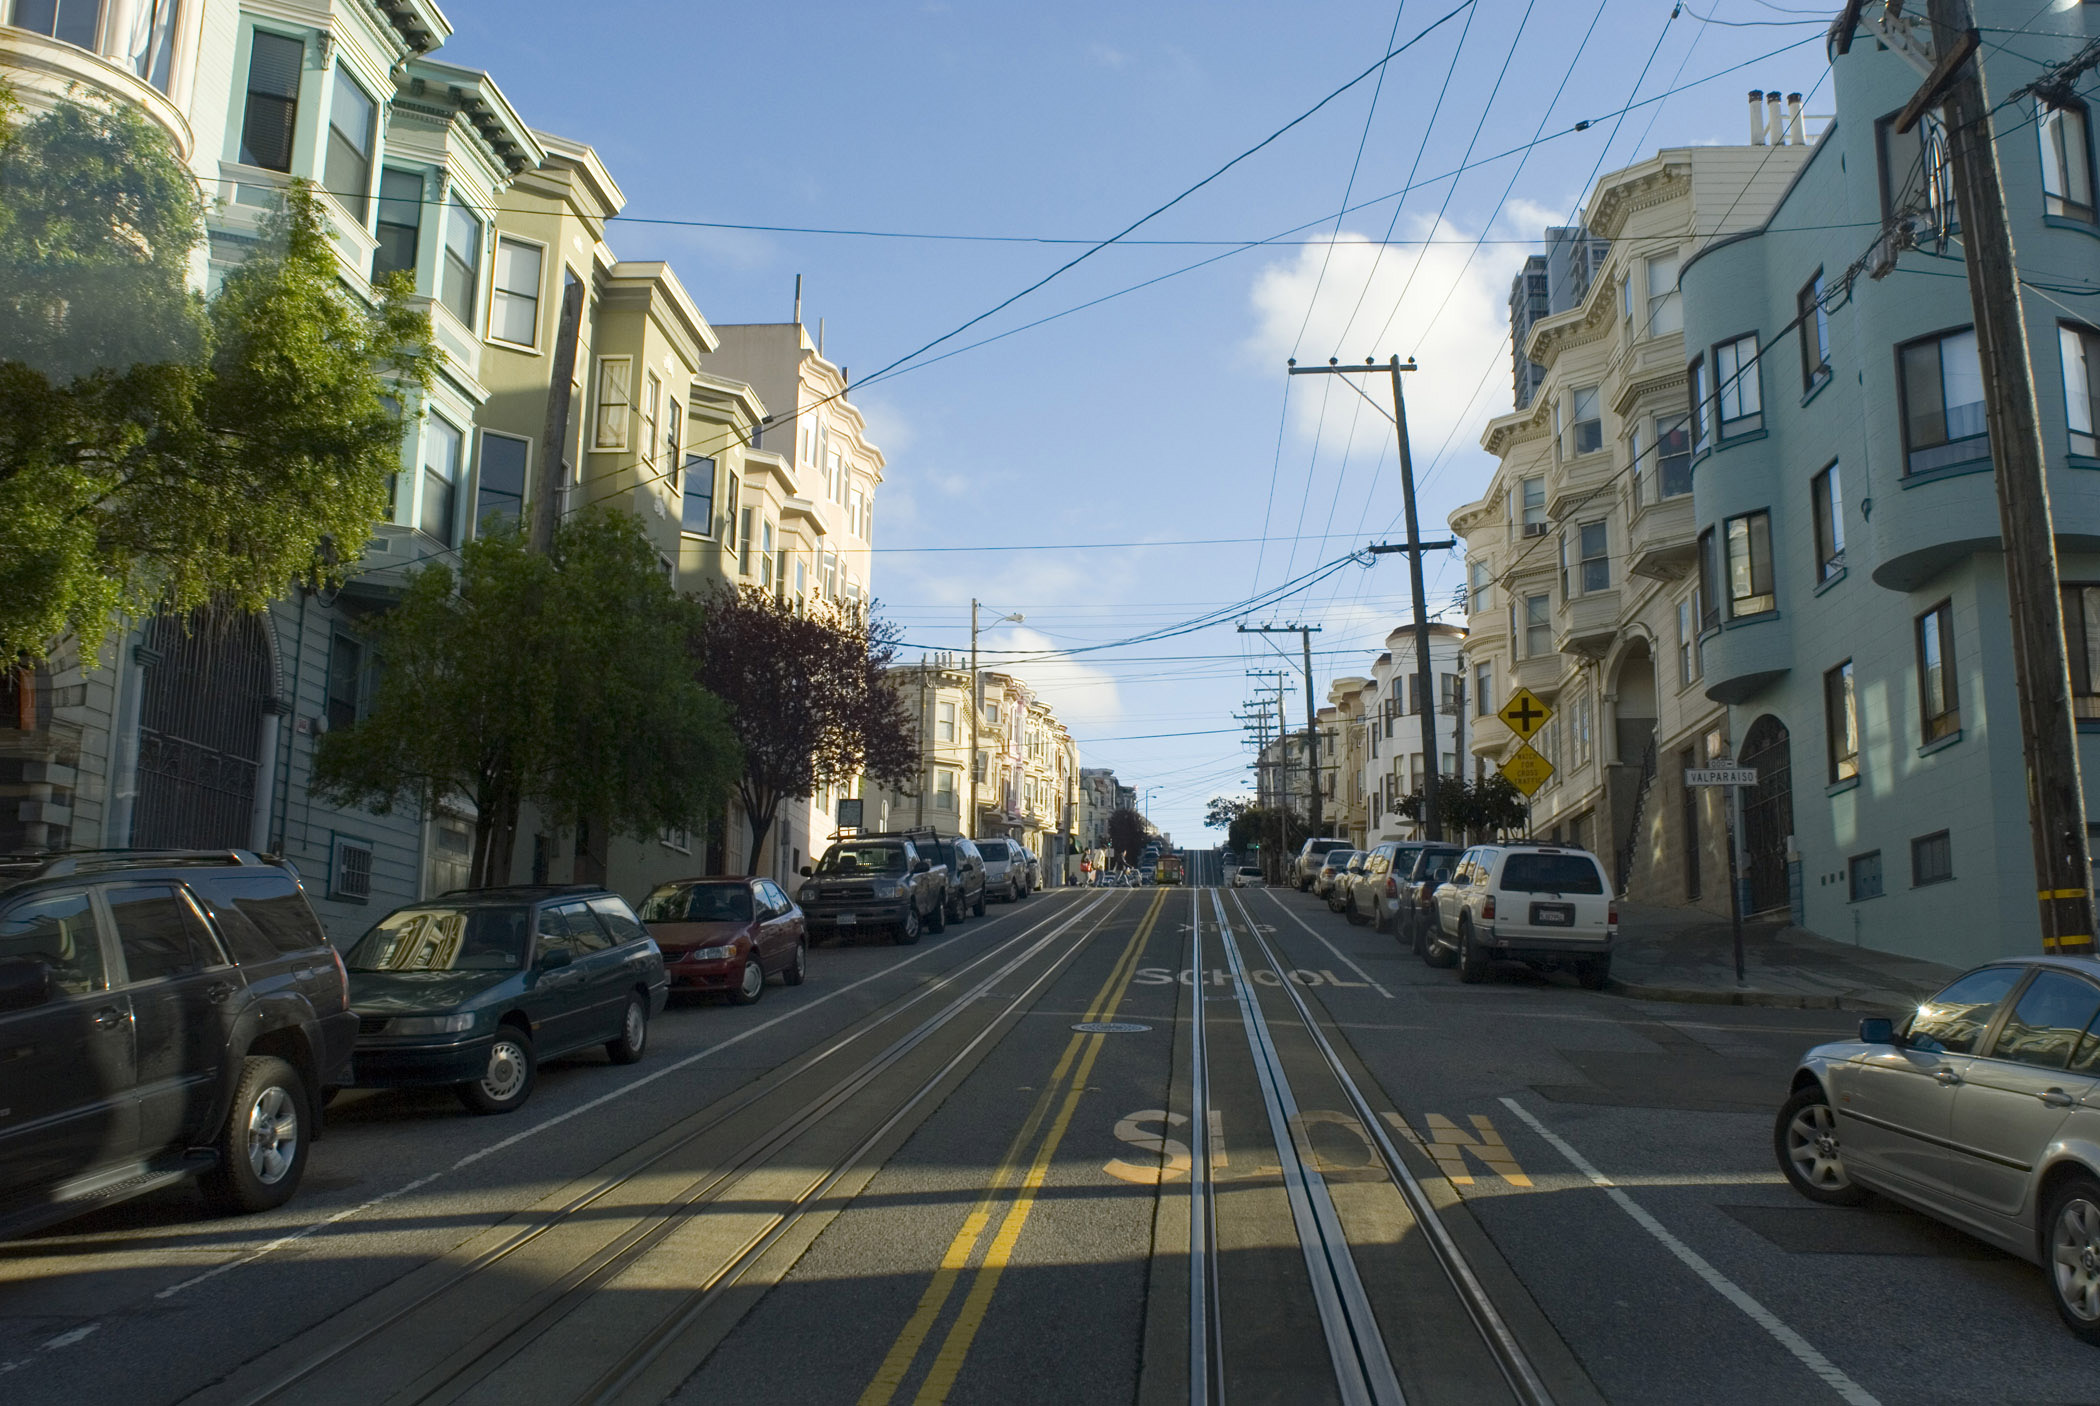 Cable car ride through the streets of San Francisco looking back along the tracks down the street in a residential district